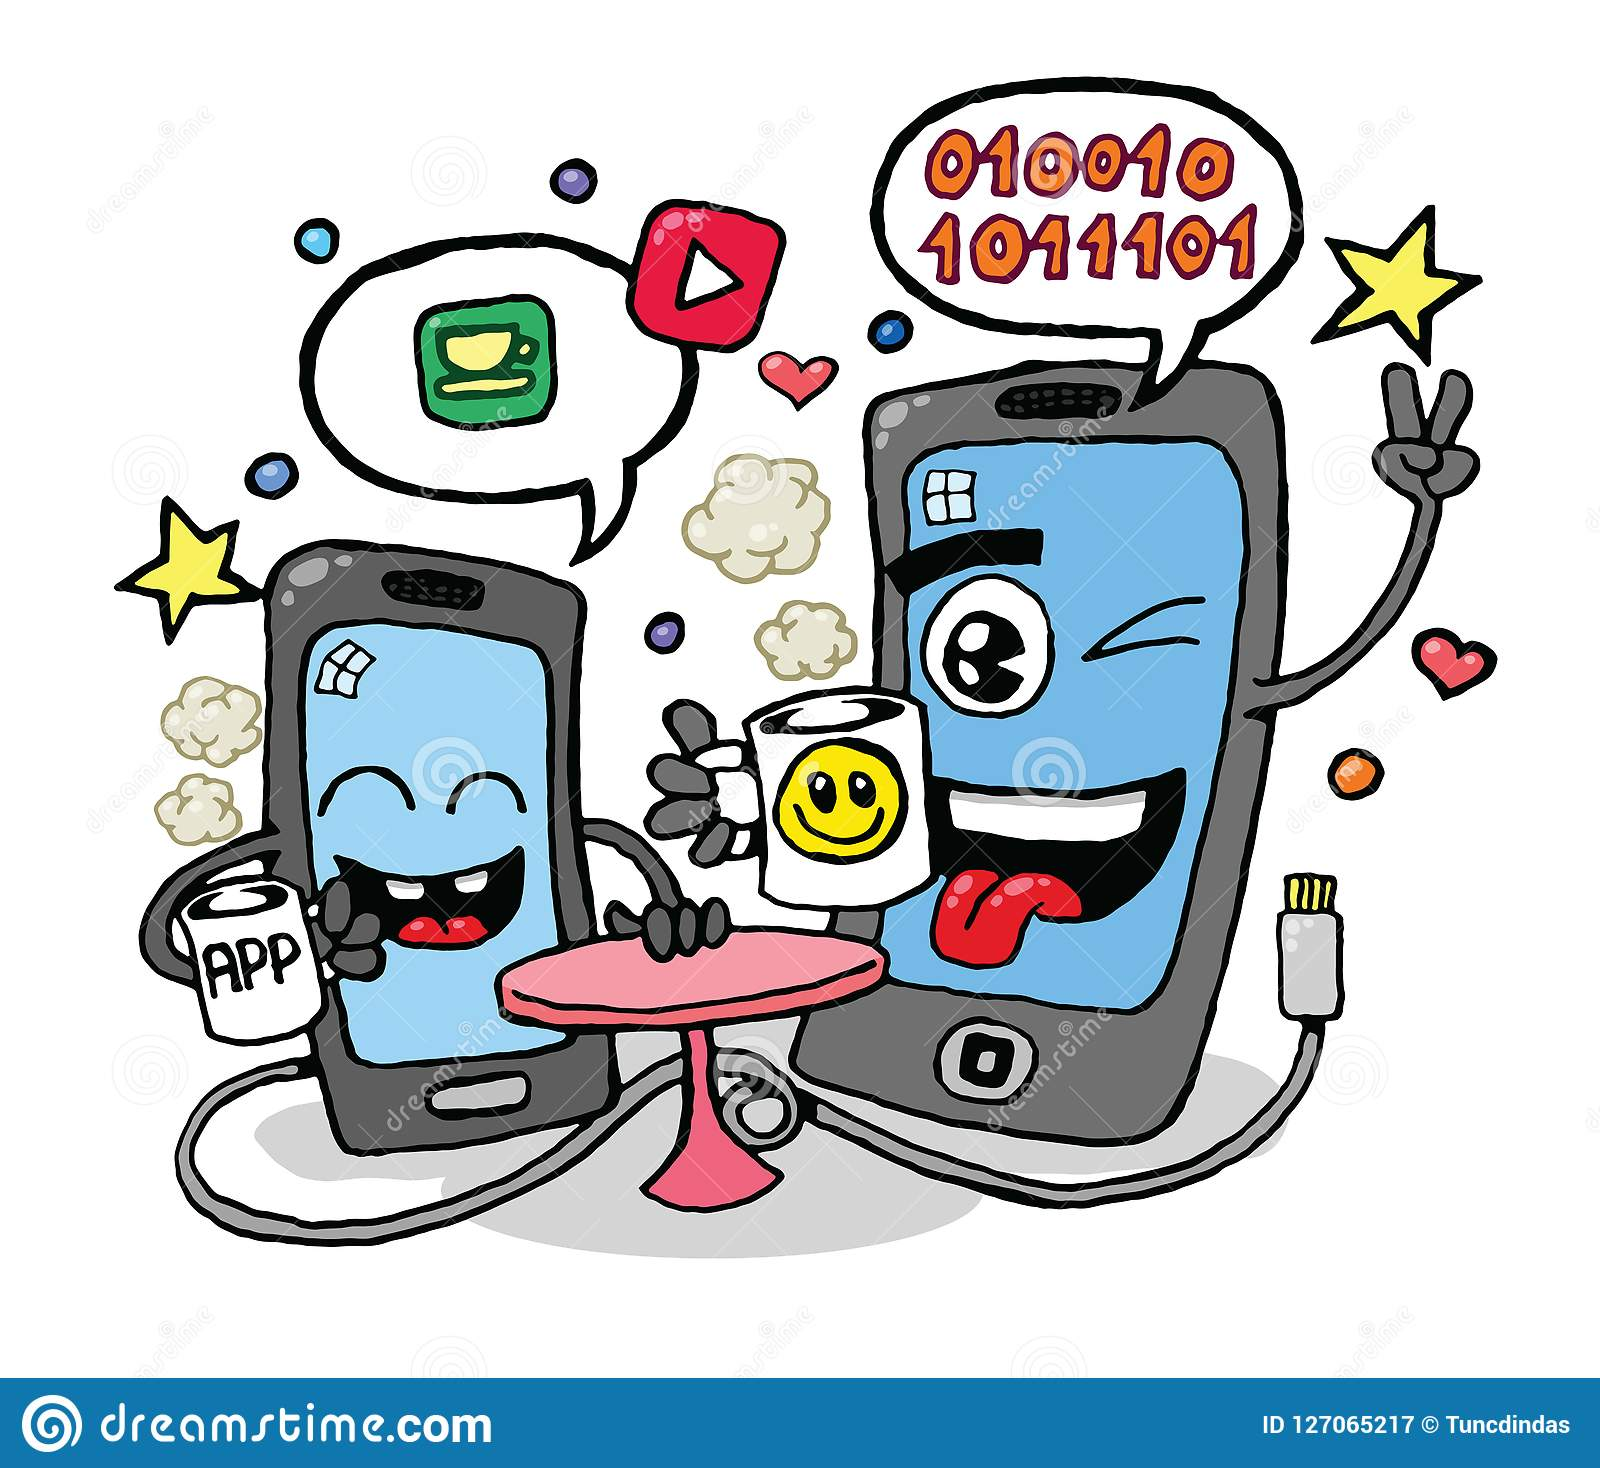 Funny Phones Stock Illustrations 487 Funny Phones Stock Illustrations Vectors Clipart Dreamstime